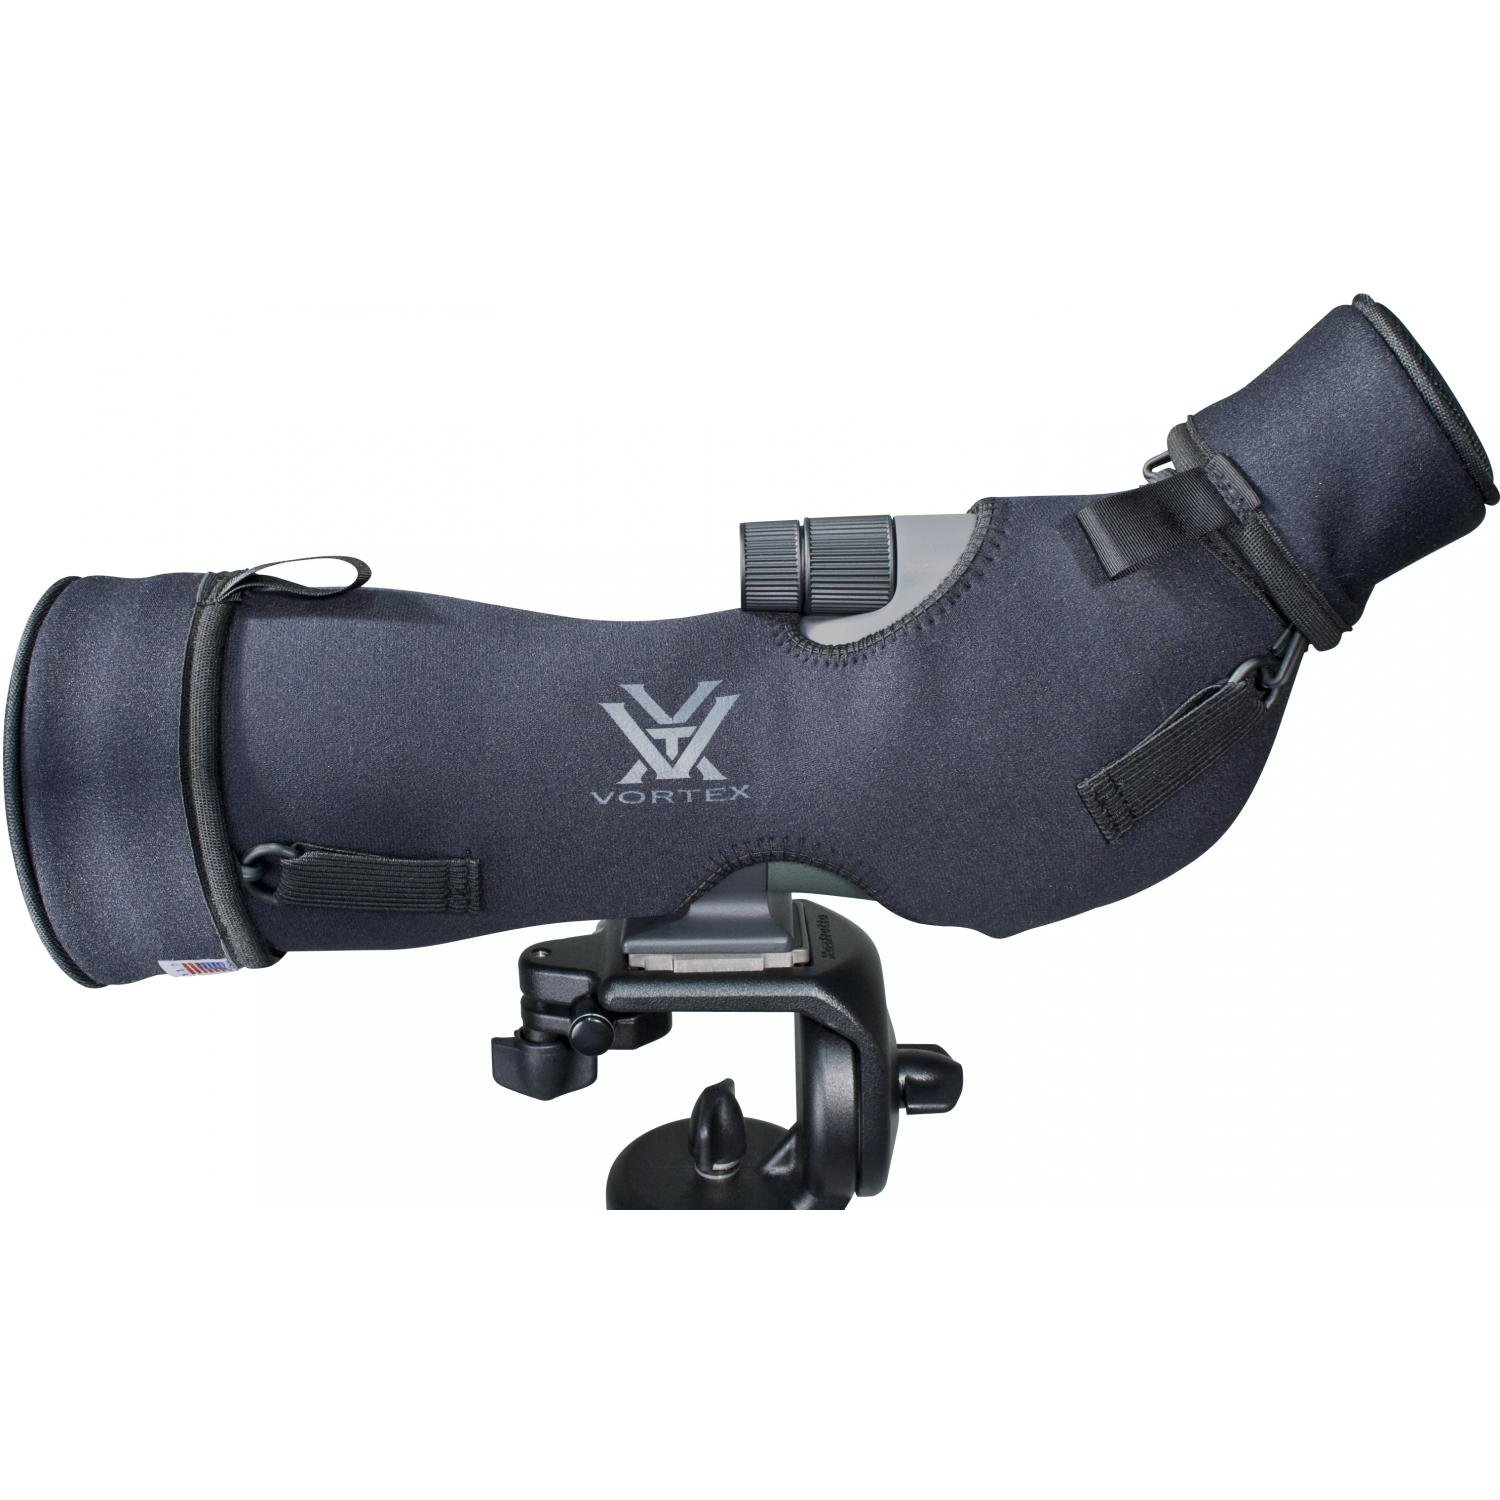 Vortex Optics Razor HD Black Fitted Spotting Scope Case, Angled